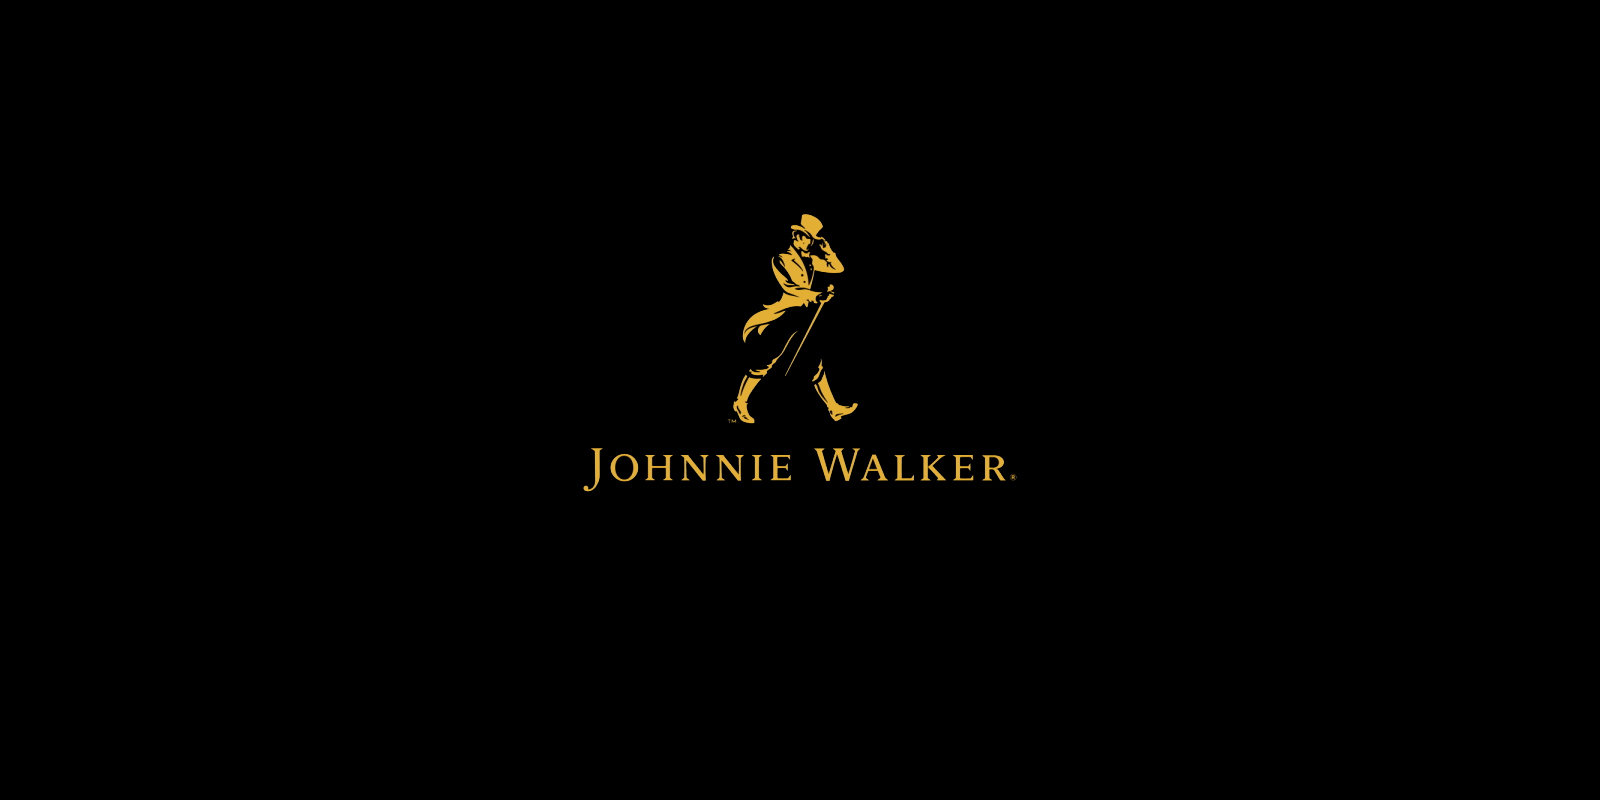 Johnnie Walker / Ghost and Rare